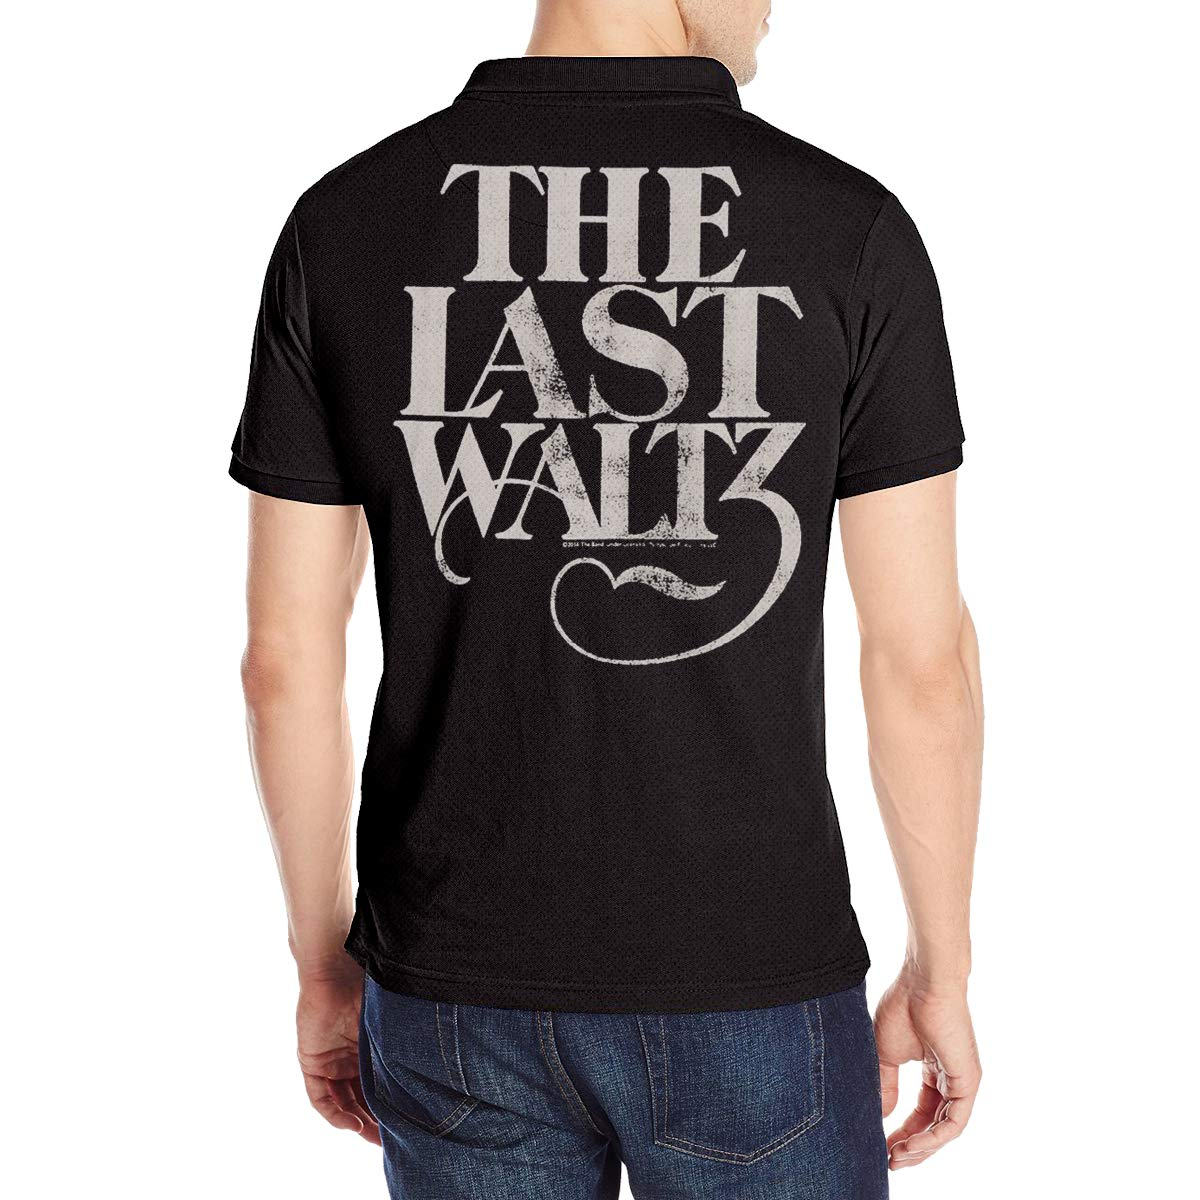 Mens The Last Waltz Classic Summer Short Sleeves Polo T Shirts